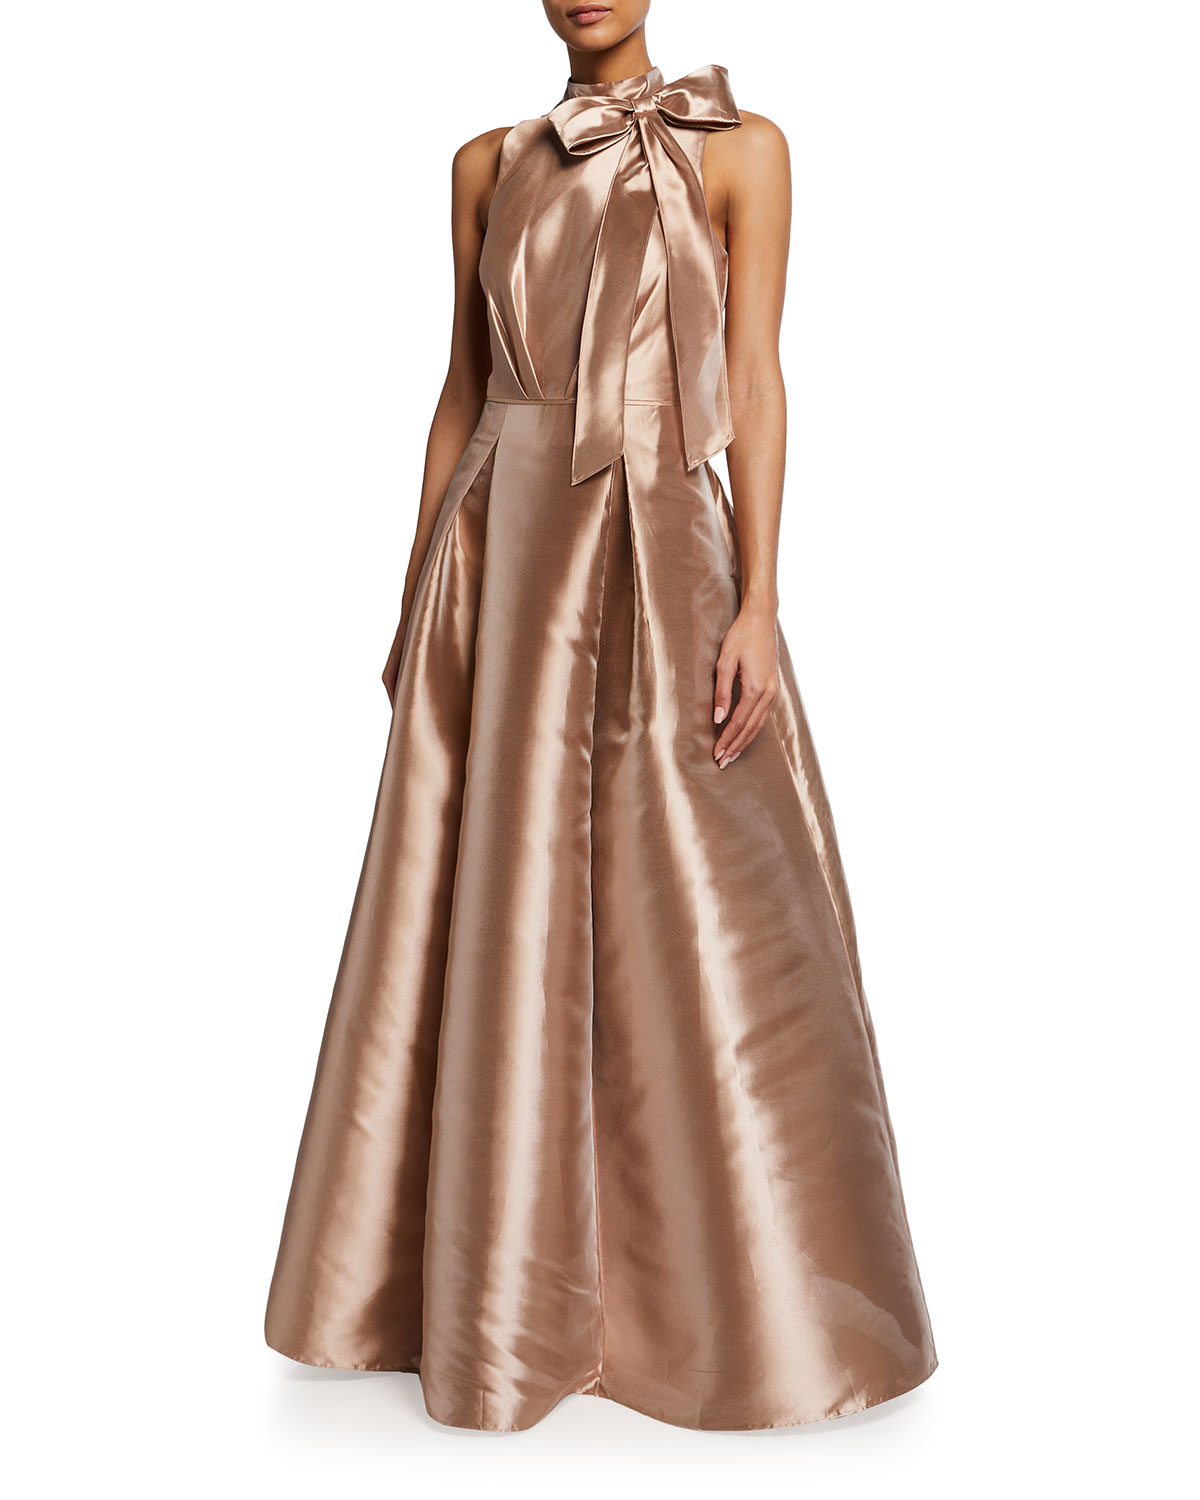 Aidan Mattox Gowns MOCK-NECK TAFFETA BALL GOWN WITH BOW